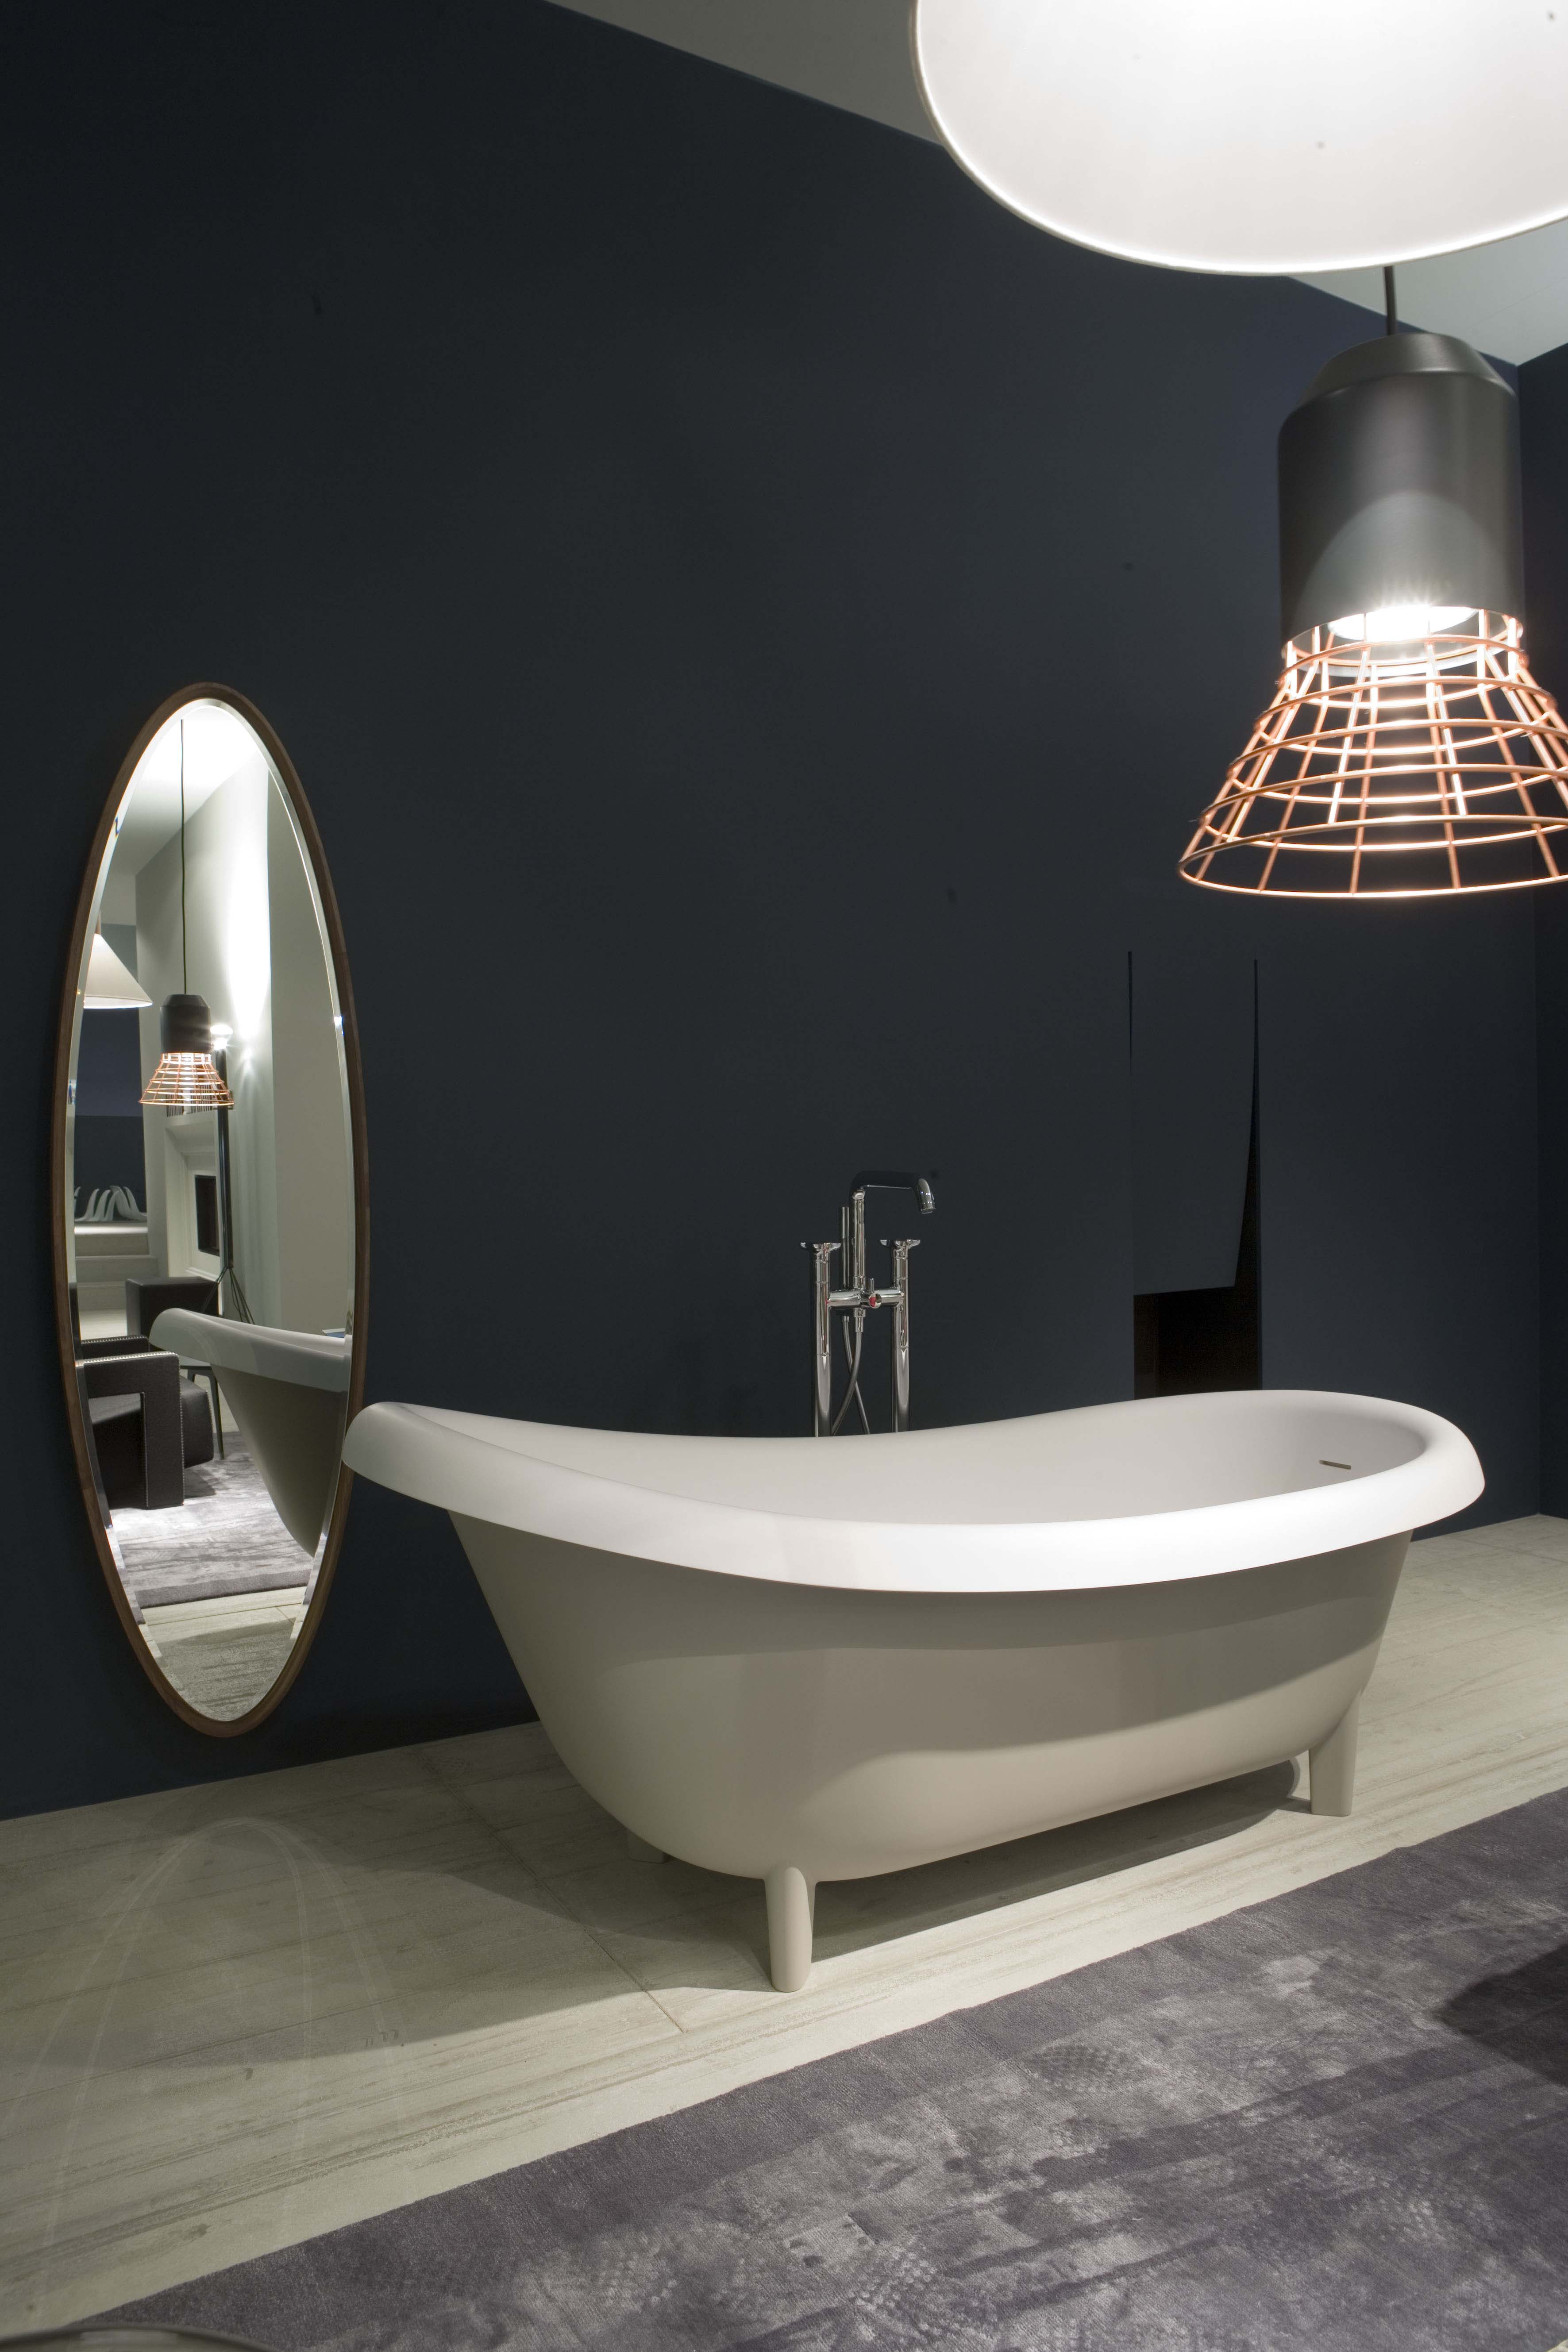 antonio lupi new products at cersaie 2014. Black Bedroom Furniture Sets. Home Design Ideas